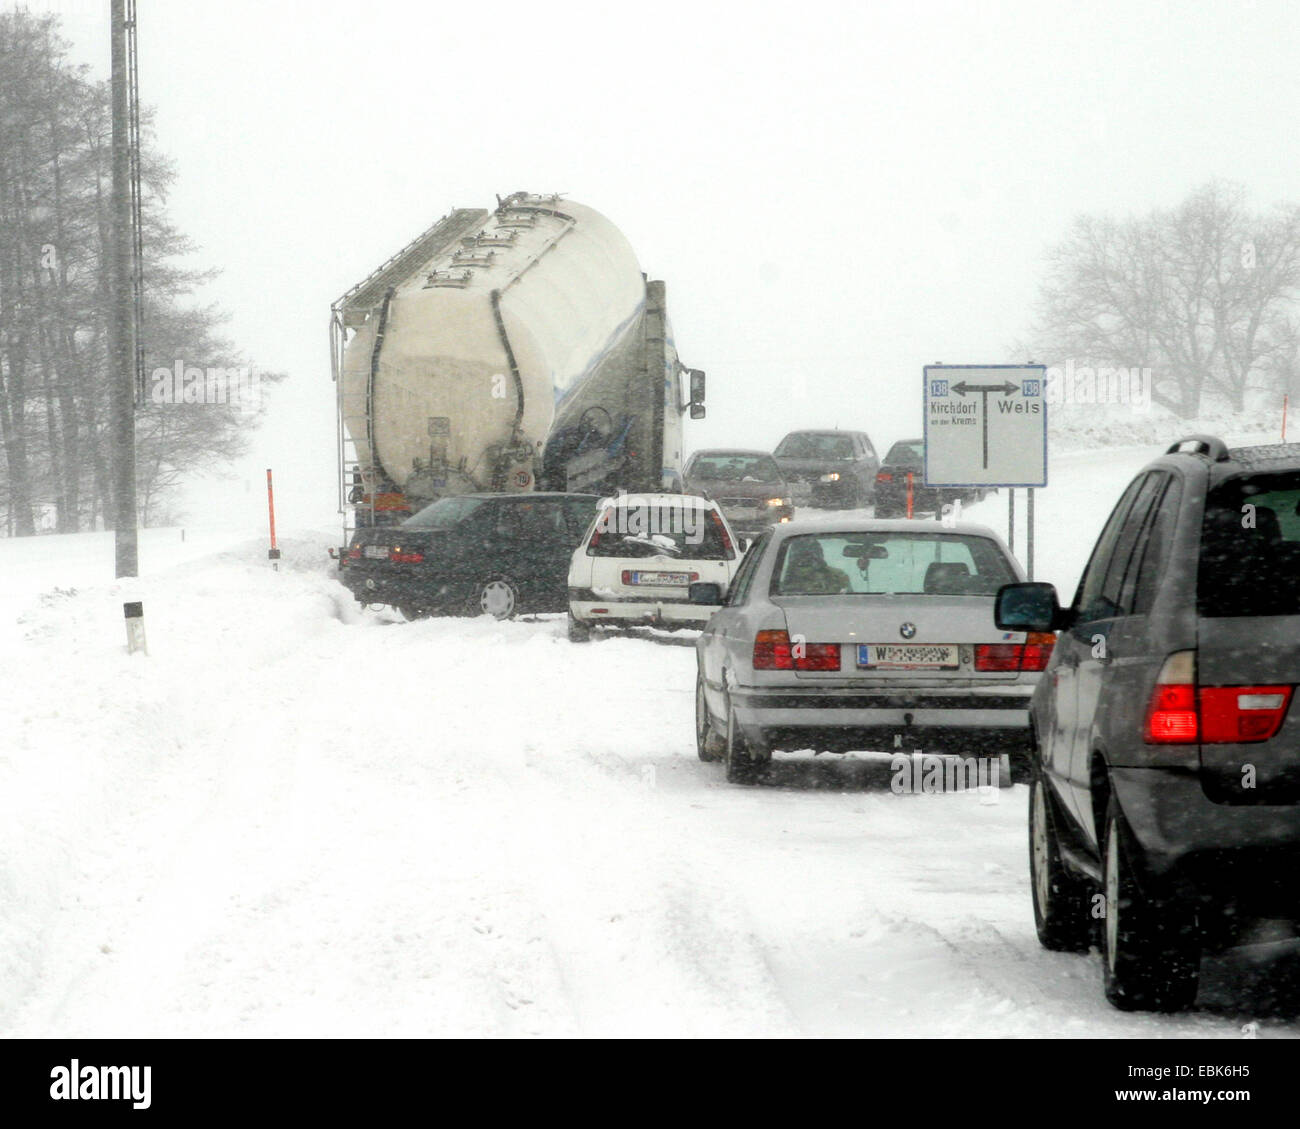 traffic chaos on a snow covered road with fresh snow - Stock Image